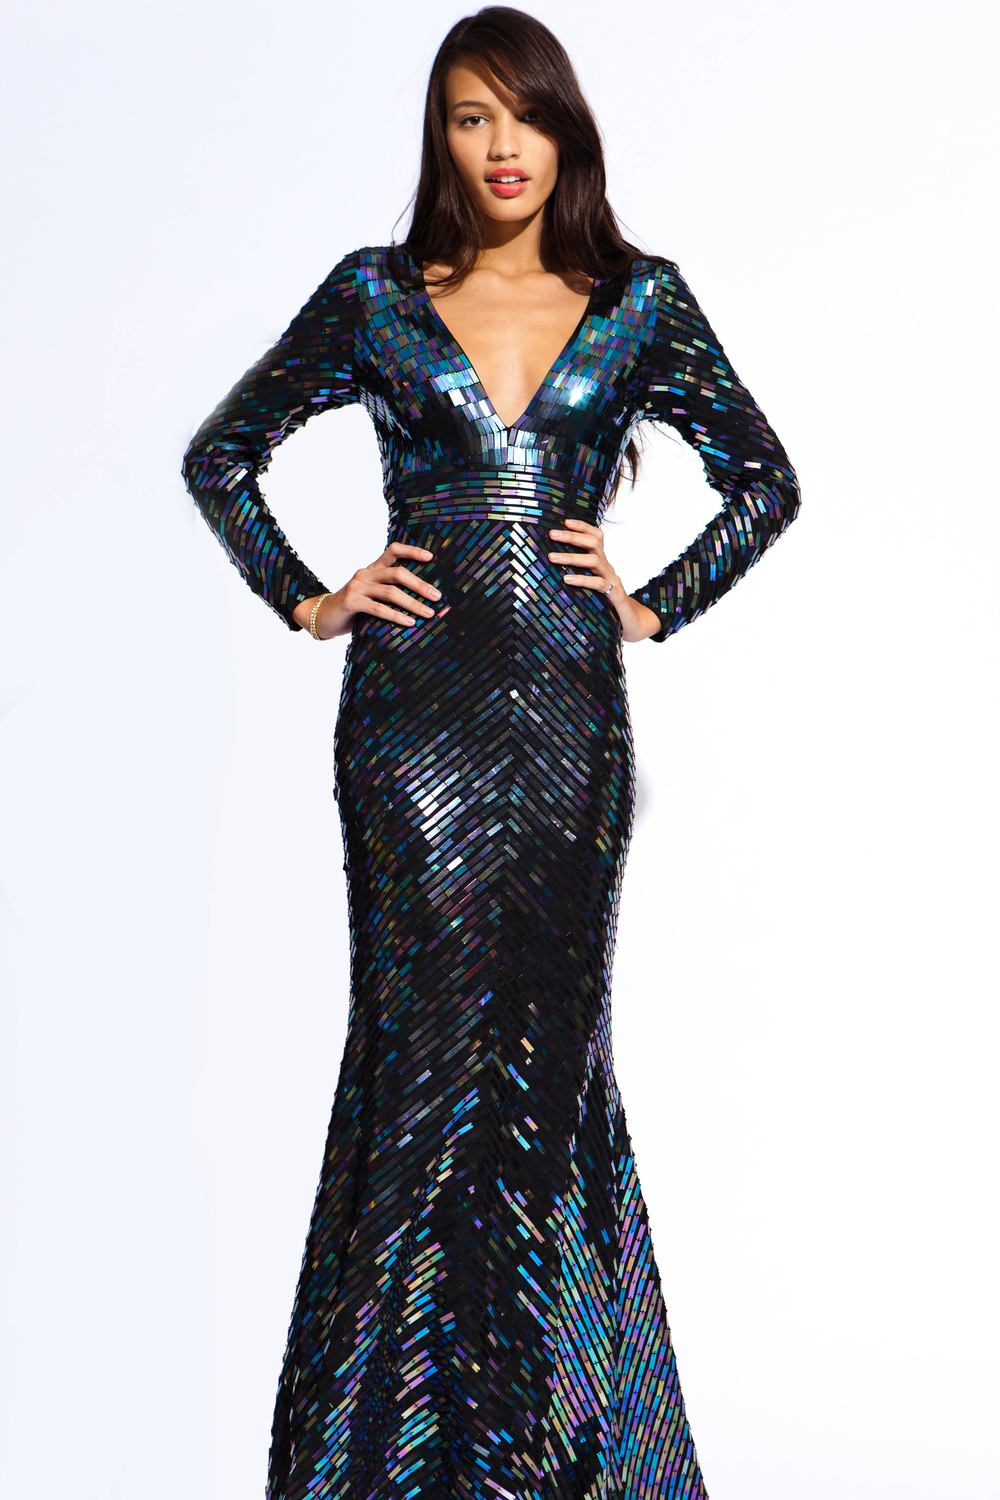 jovani-evening-dress-77592.jpg